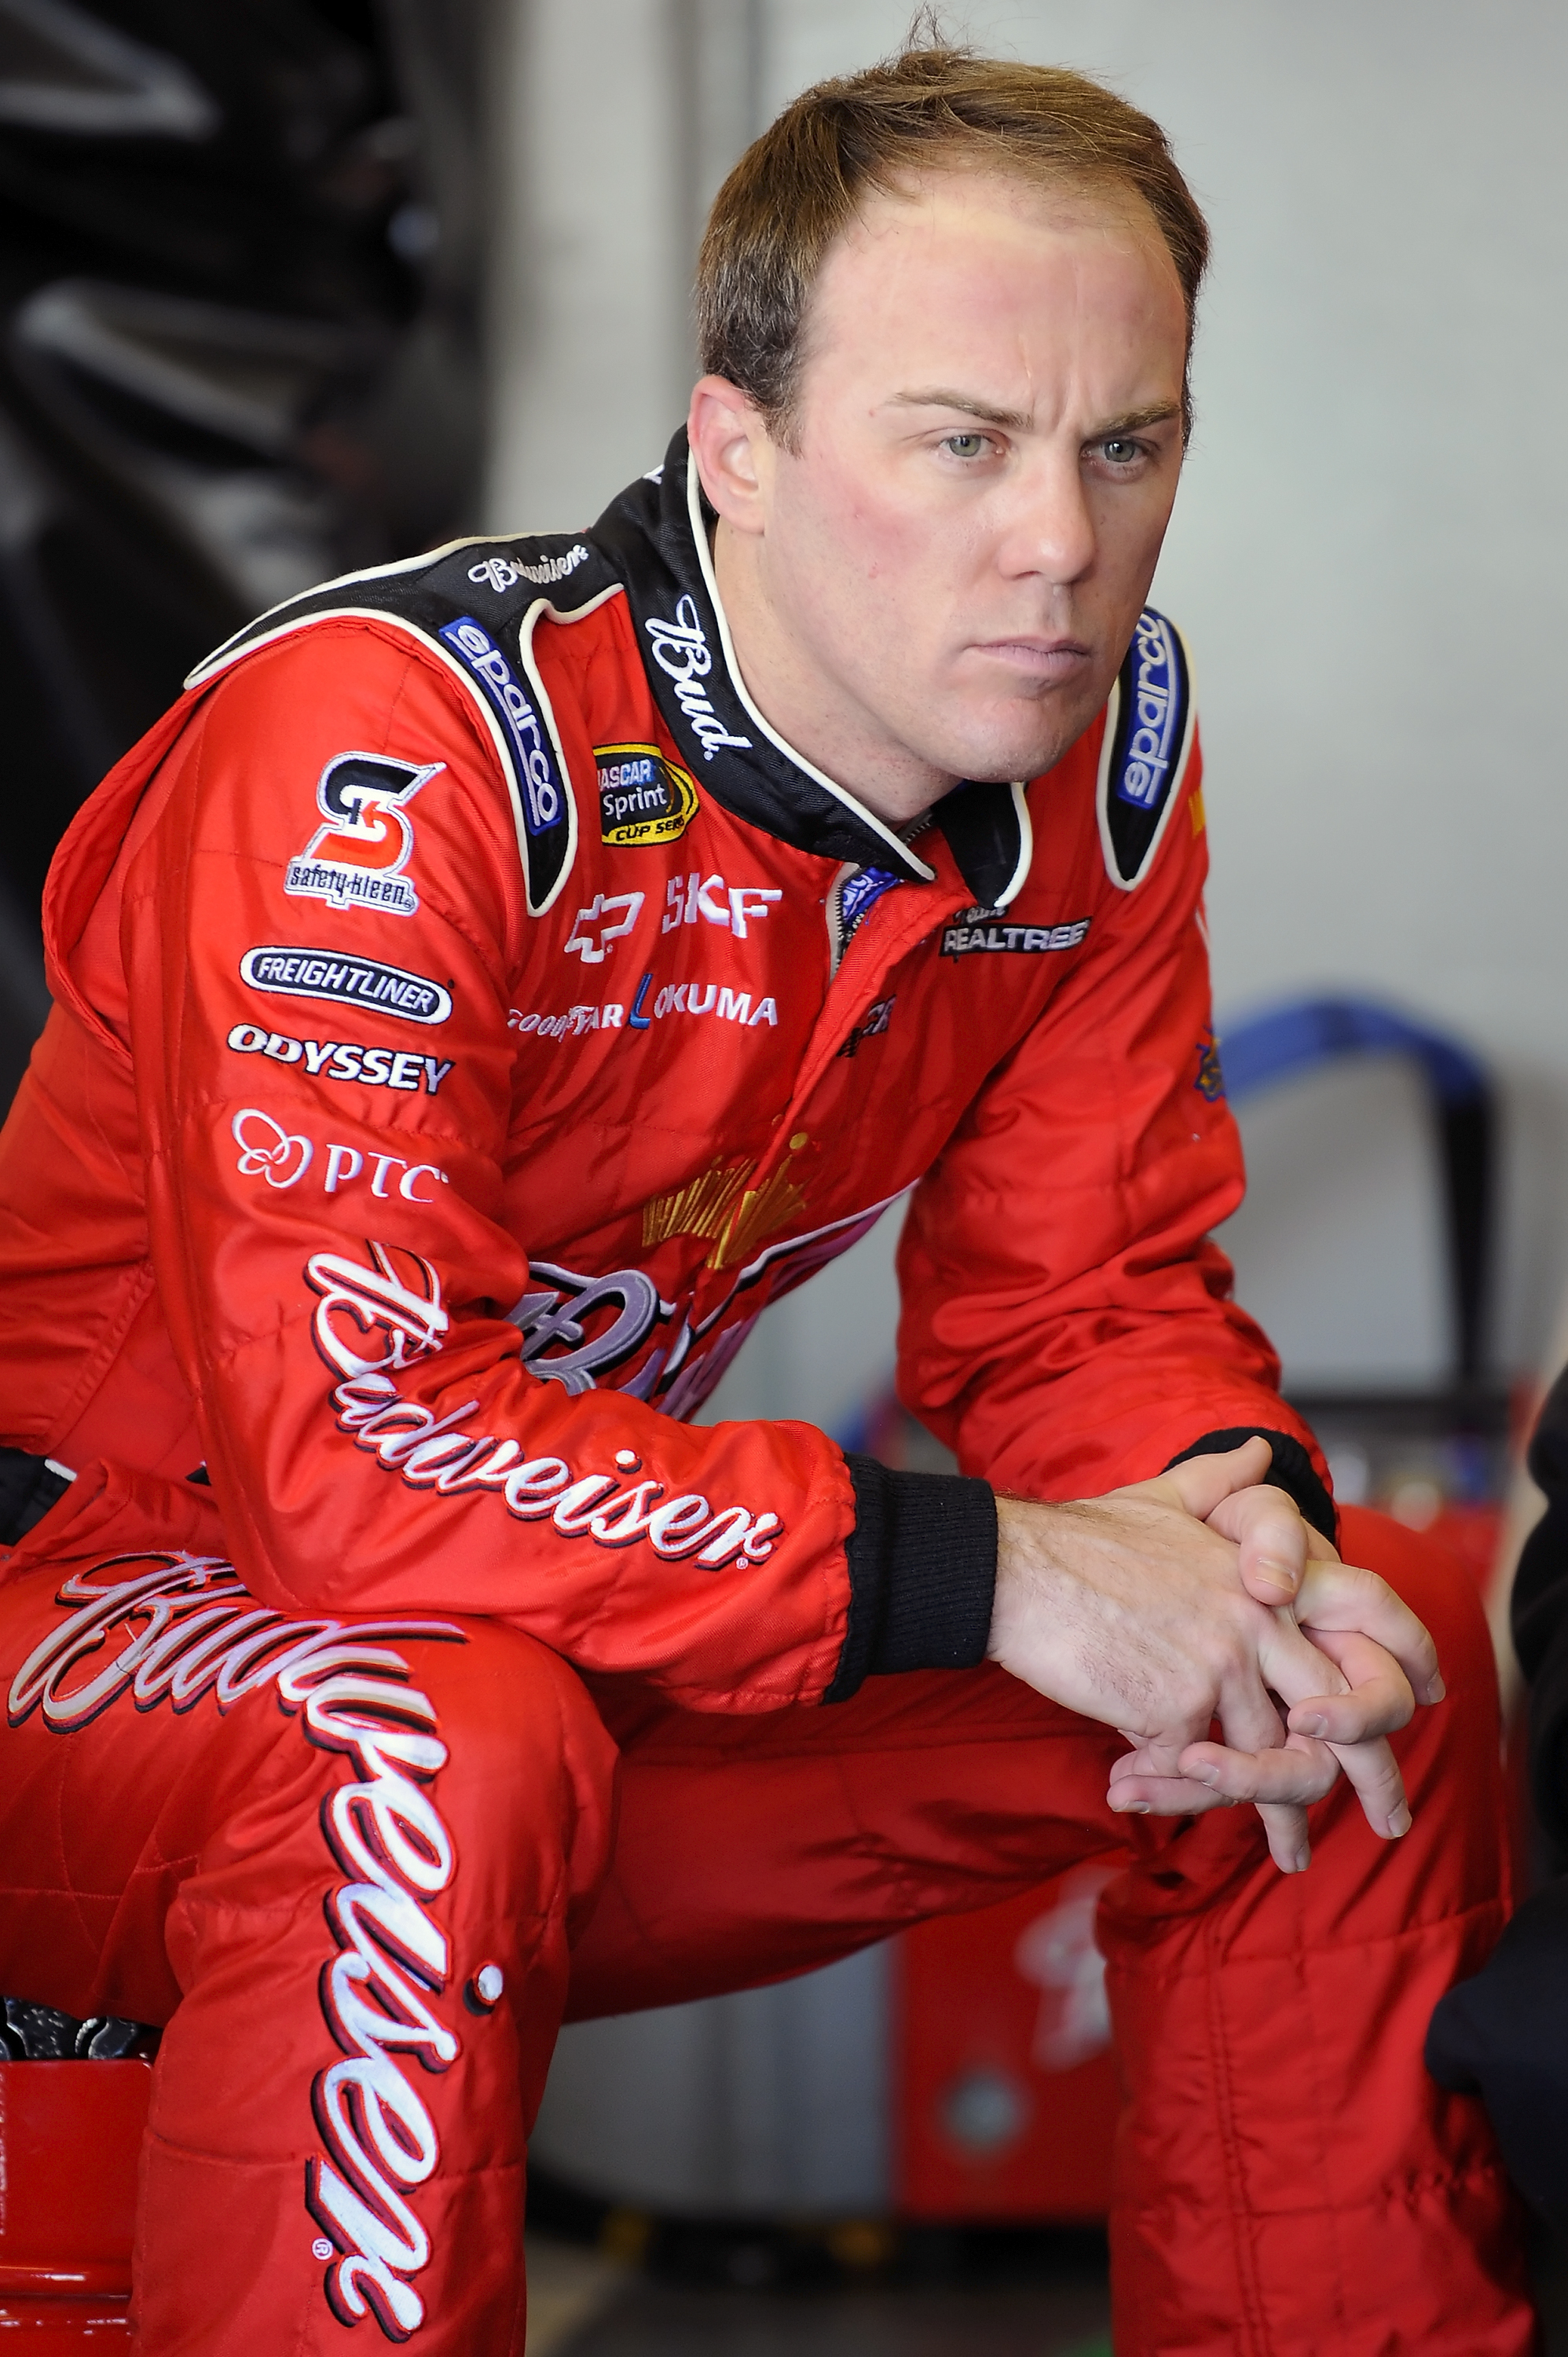 DAYTONA BEACH, FL - JANUARY 20:  Kevin Harvick, driver of the #29 Budweiser Chevrolet, waits in the garage during a test session at Daytona International Speedway on January 20, 2011 in Daytona Beach, Florida.  (Photo by Jared C. Tilton/Getty Images for N